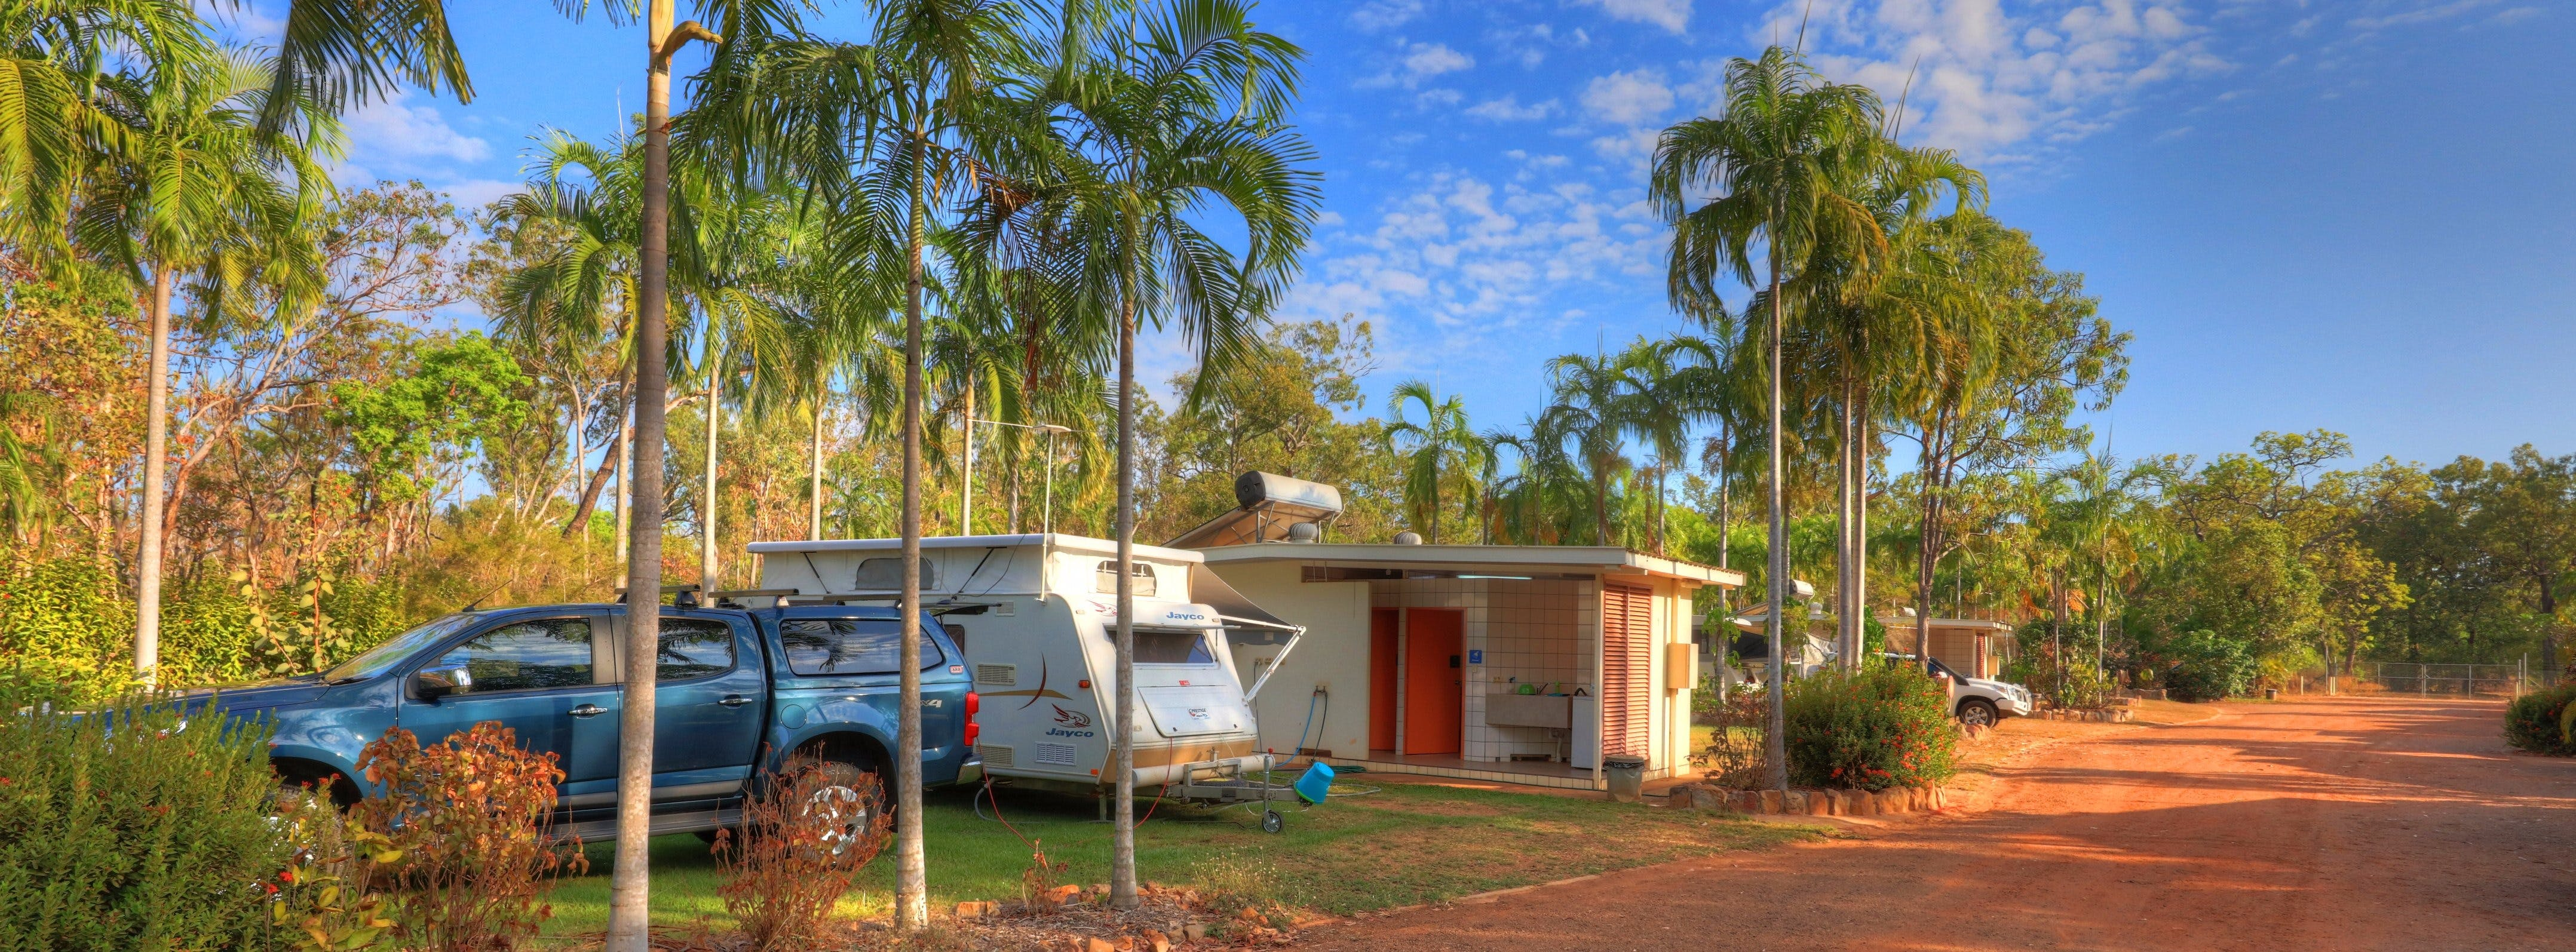 Batchelor Holiday Park - Accommodation Broken Hill